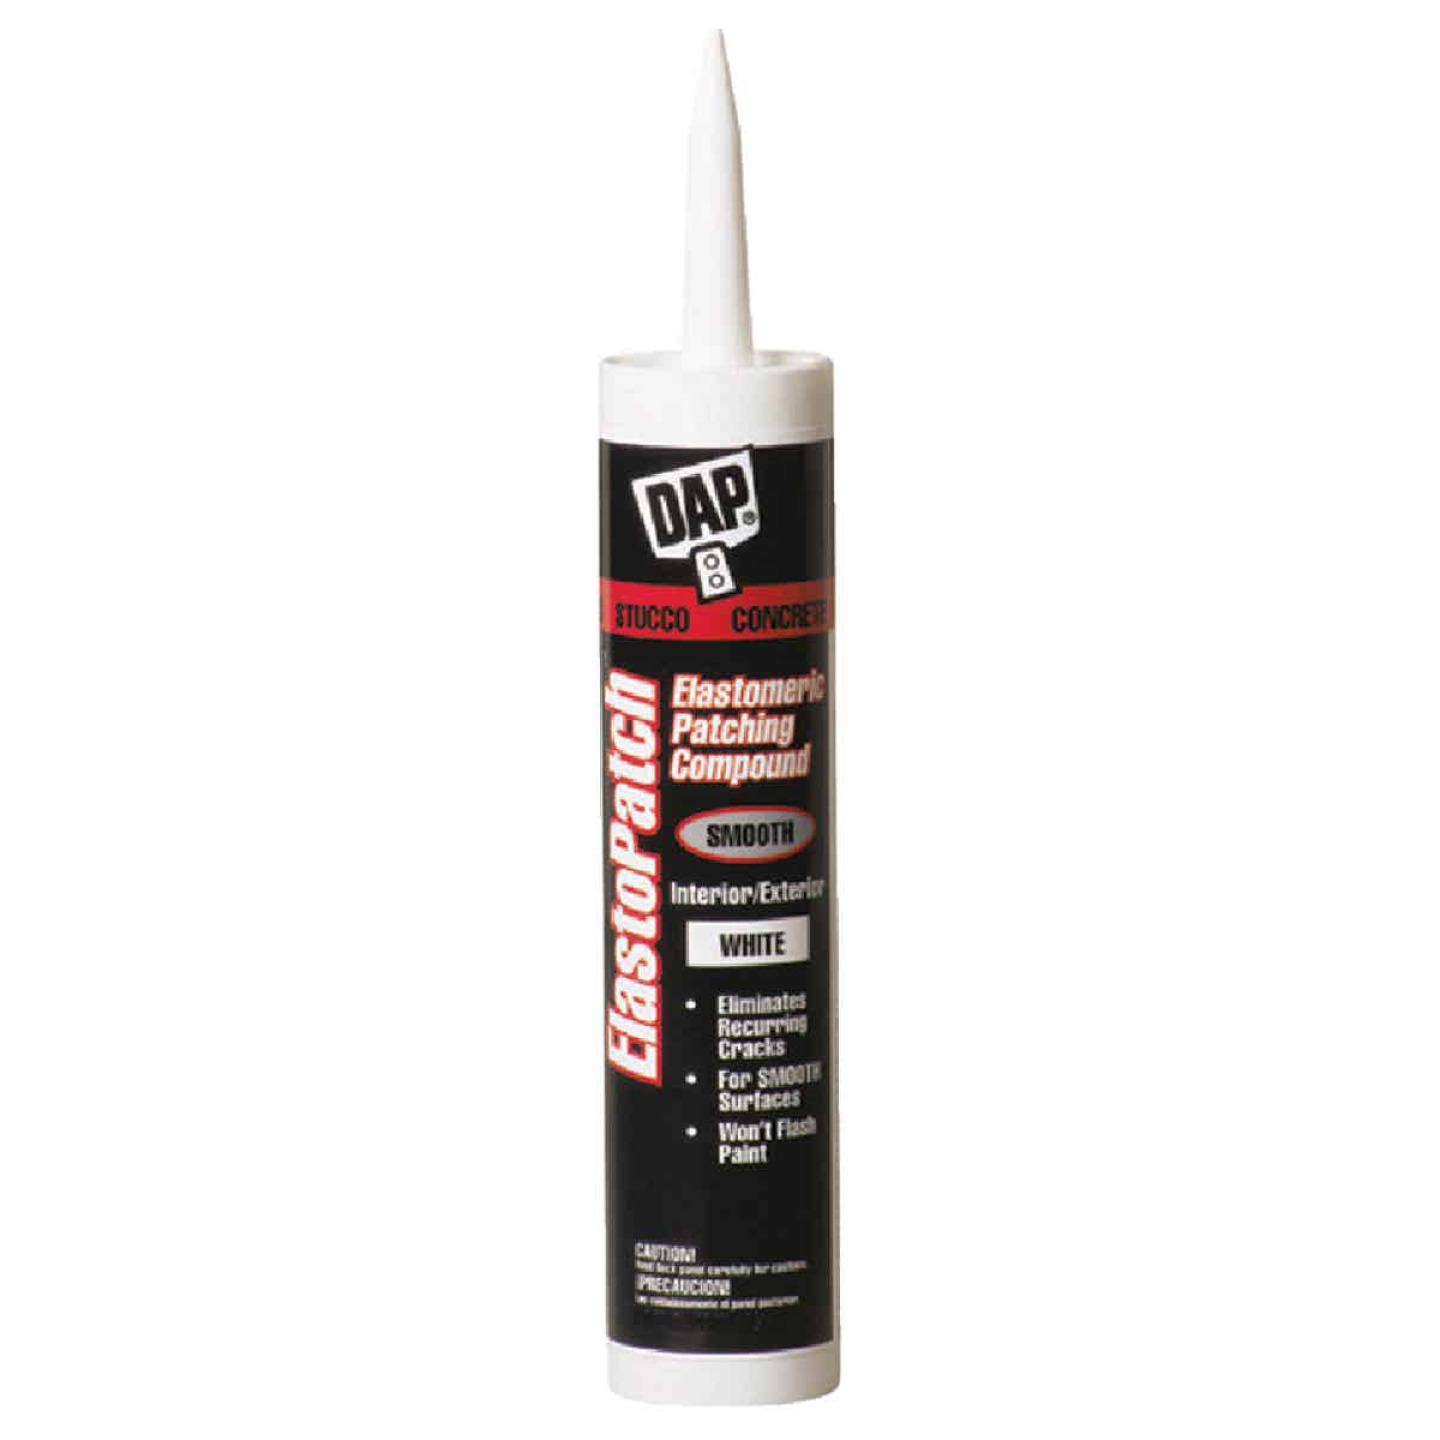 DAP ElastoPatch 10.1 Oz. White Patching Compound Image 1